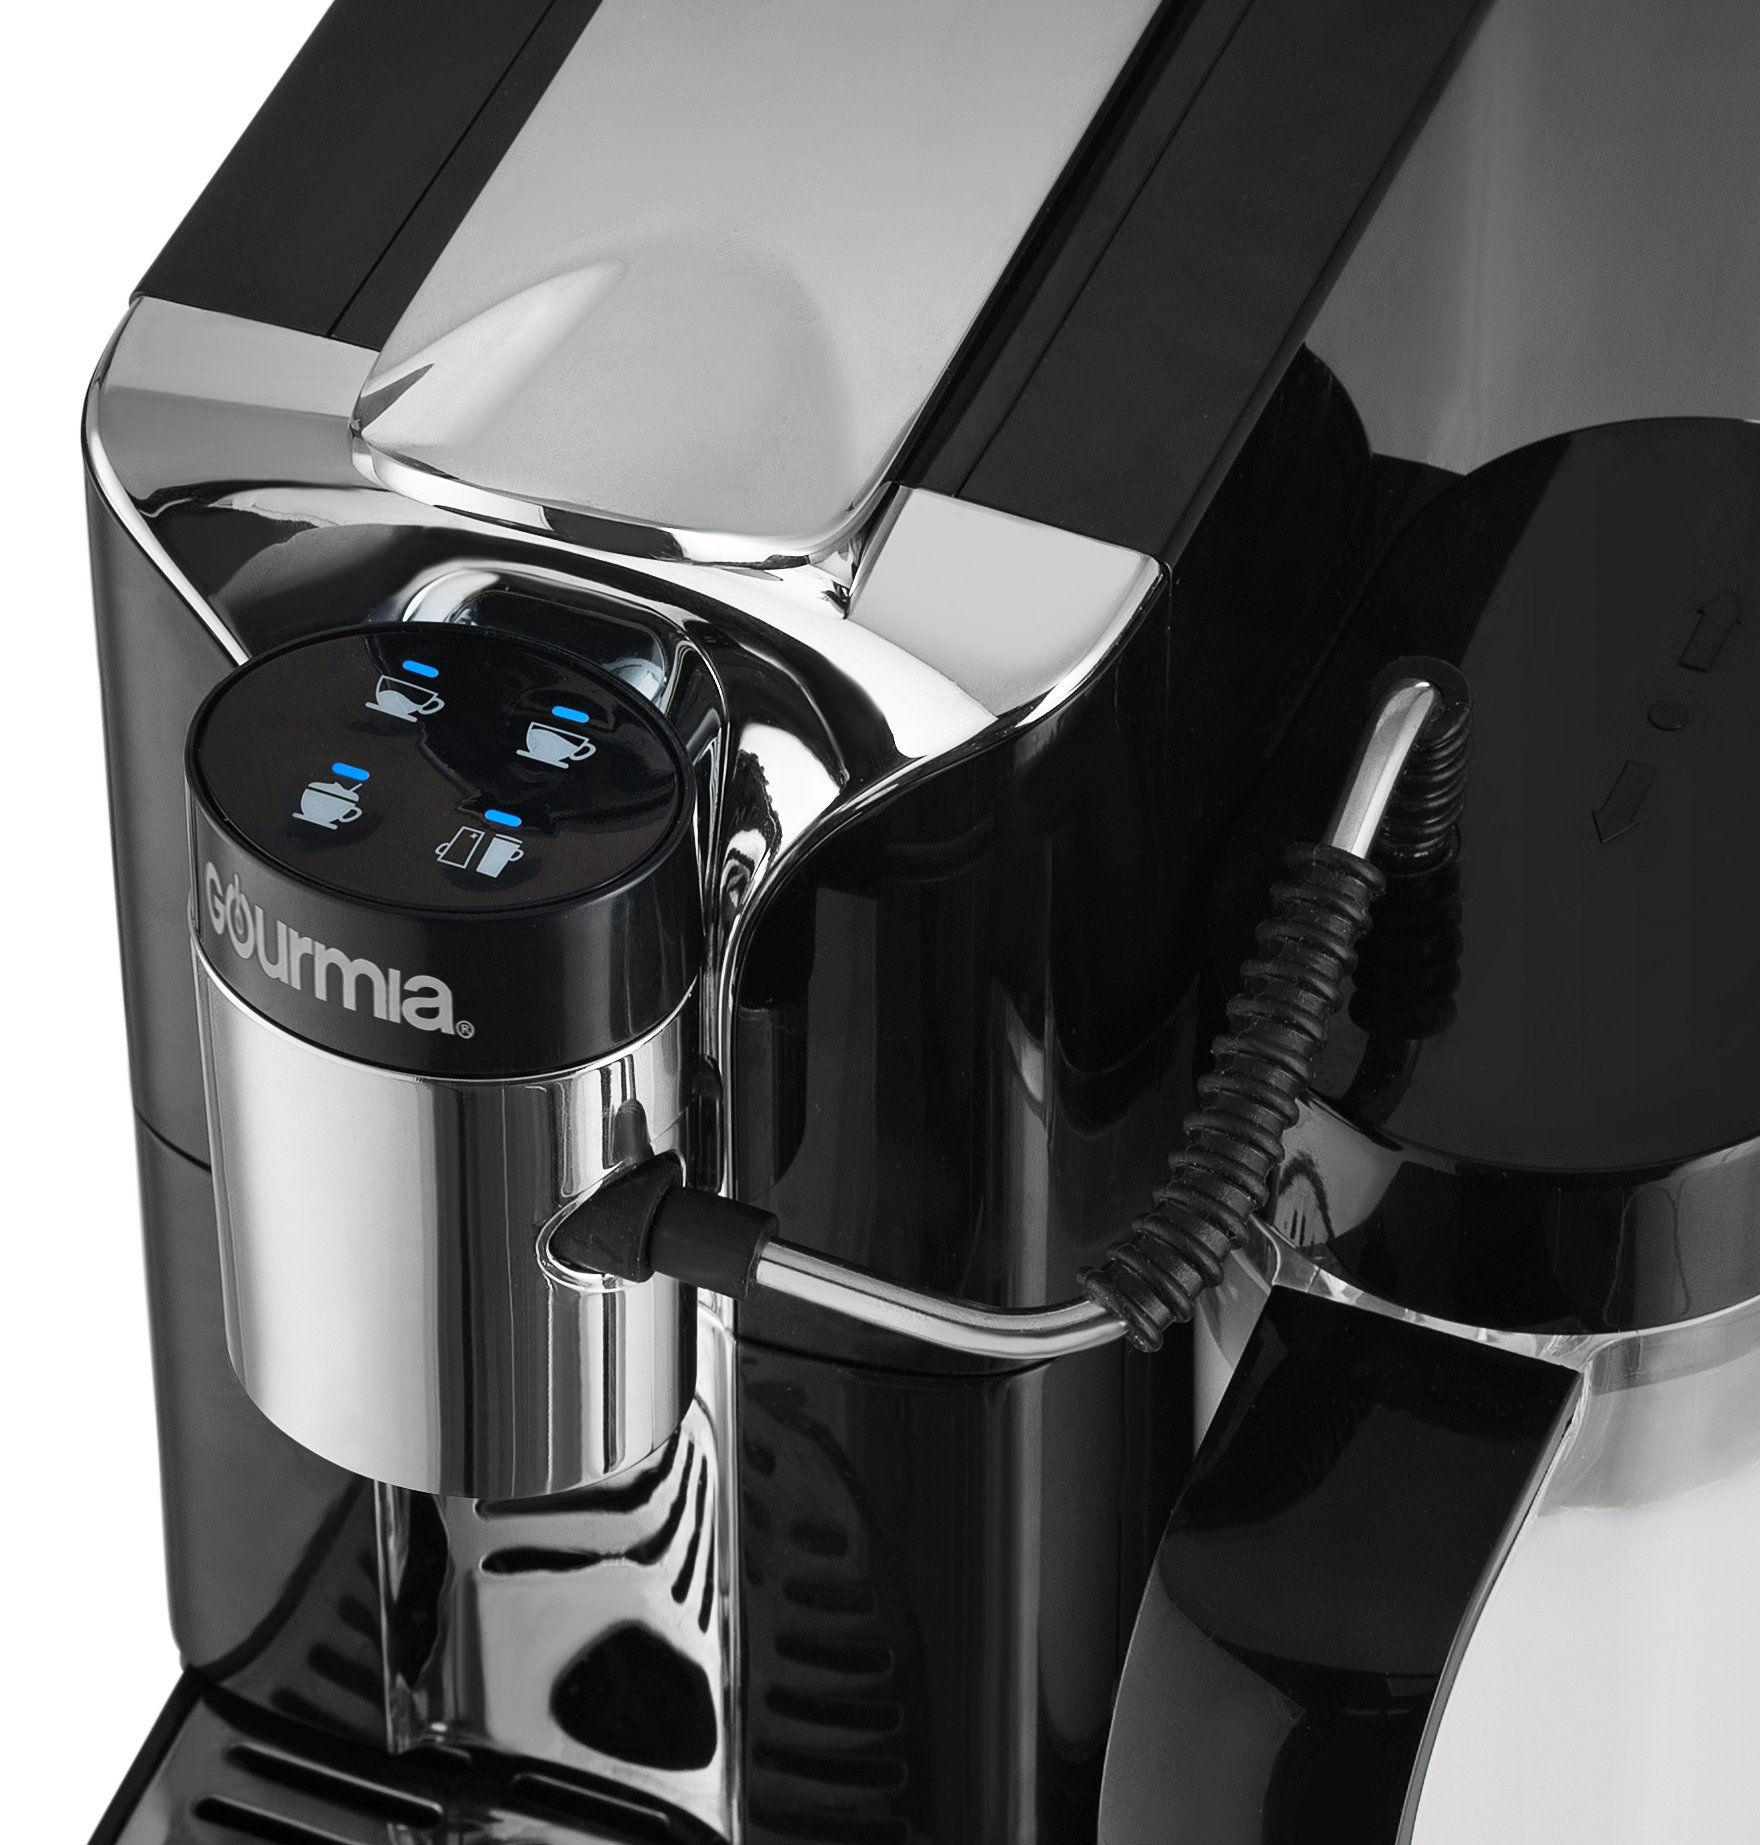 Gourmia GCM5500 - One Touch Automatic Espresso Cappuccino & Latte Maker Coffee Machine - Brew, Froth Milk, and Mix Into Cup with the Push of One Button- Nespresso Compatible by Gourmia (Image #5)